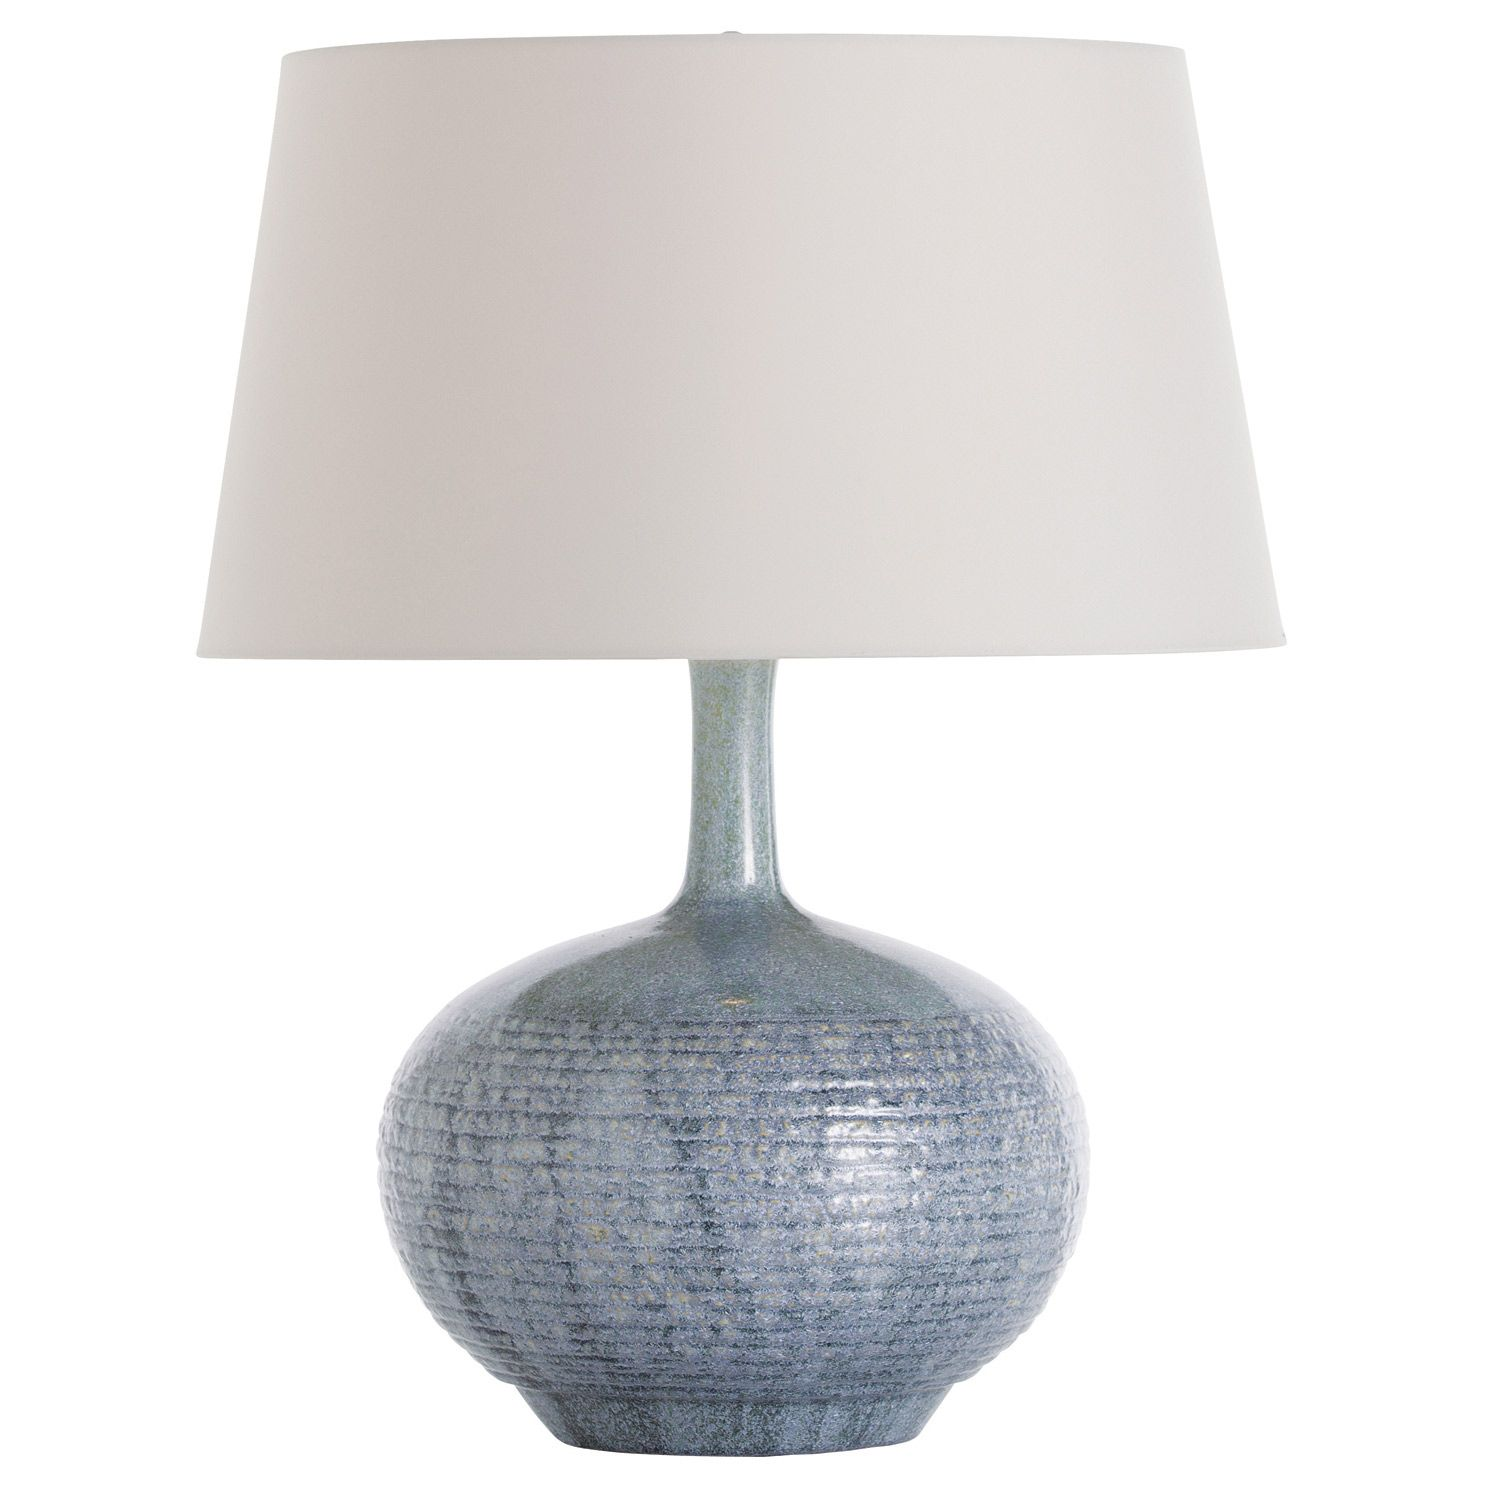 Arteriors cumberland sky blue porcelain table lamp layla grayce arteriors cumberland sky blue porcelain table lamp layla grayce aloadofball Choice Image